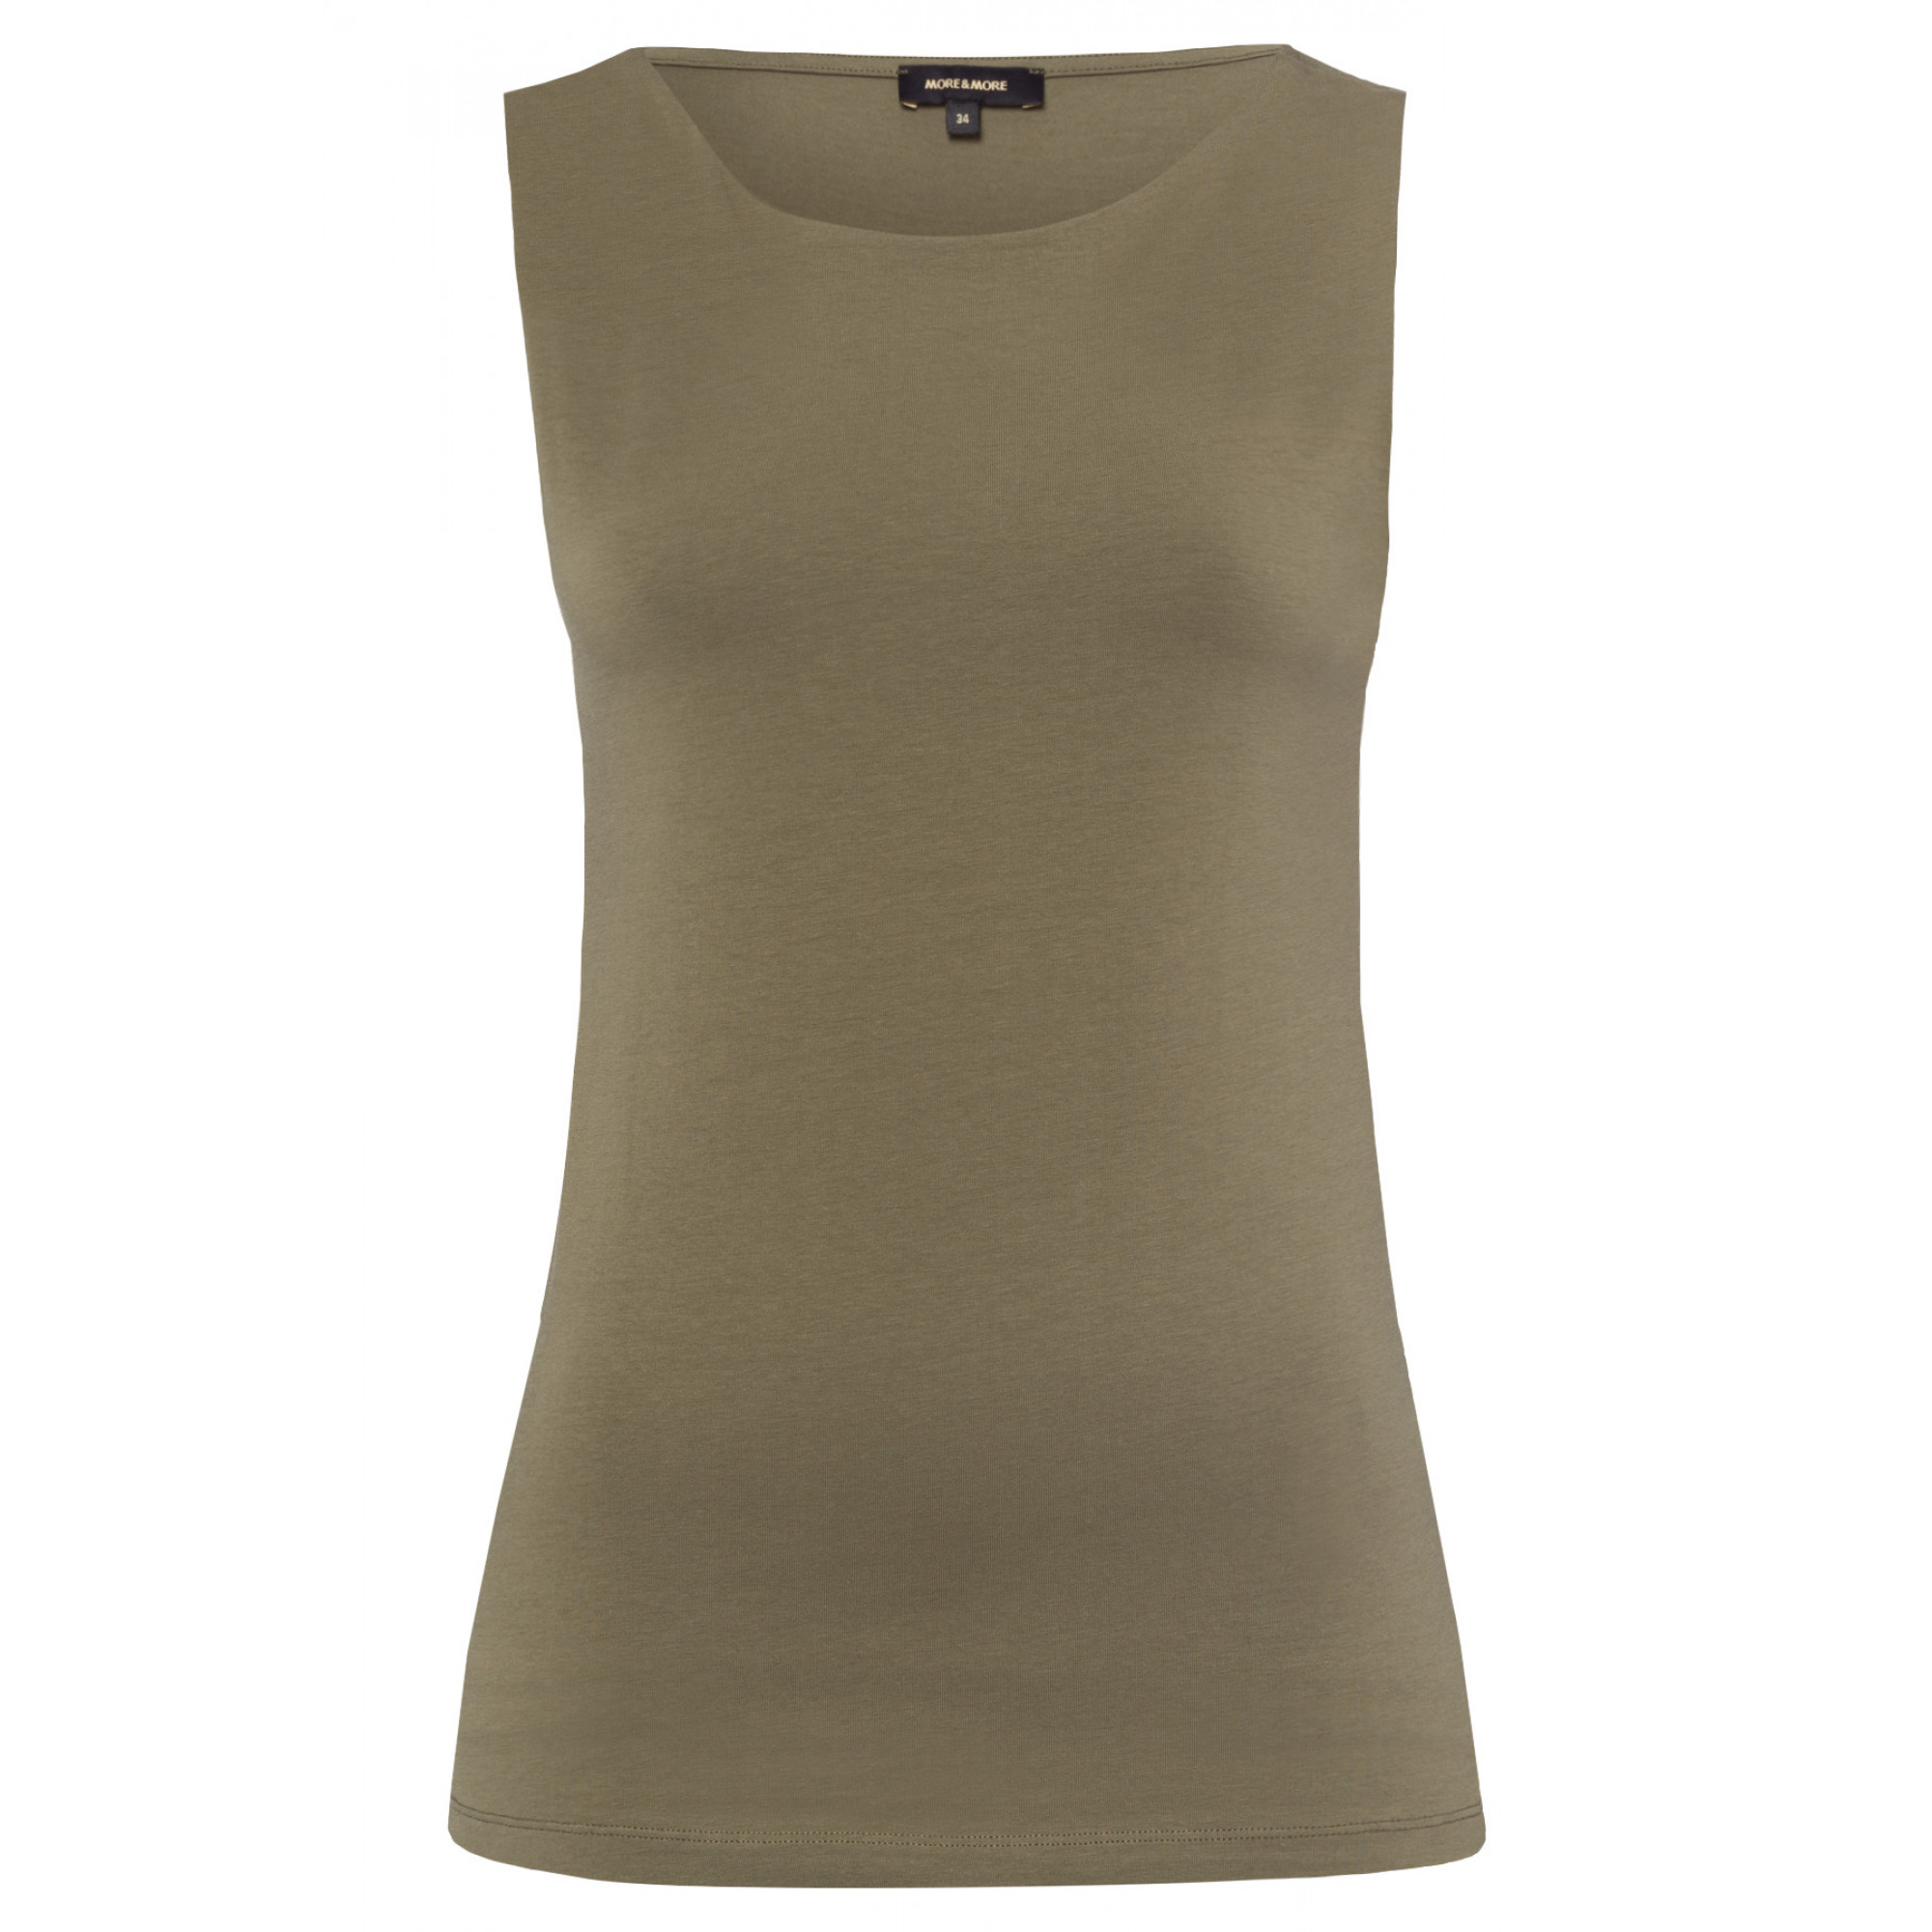 Baumwoll/Stretch Top, african green 91050062-0675 1